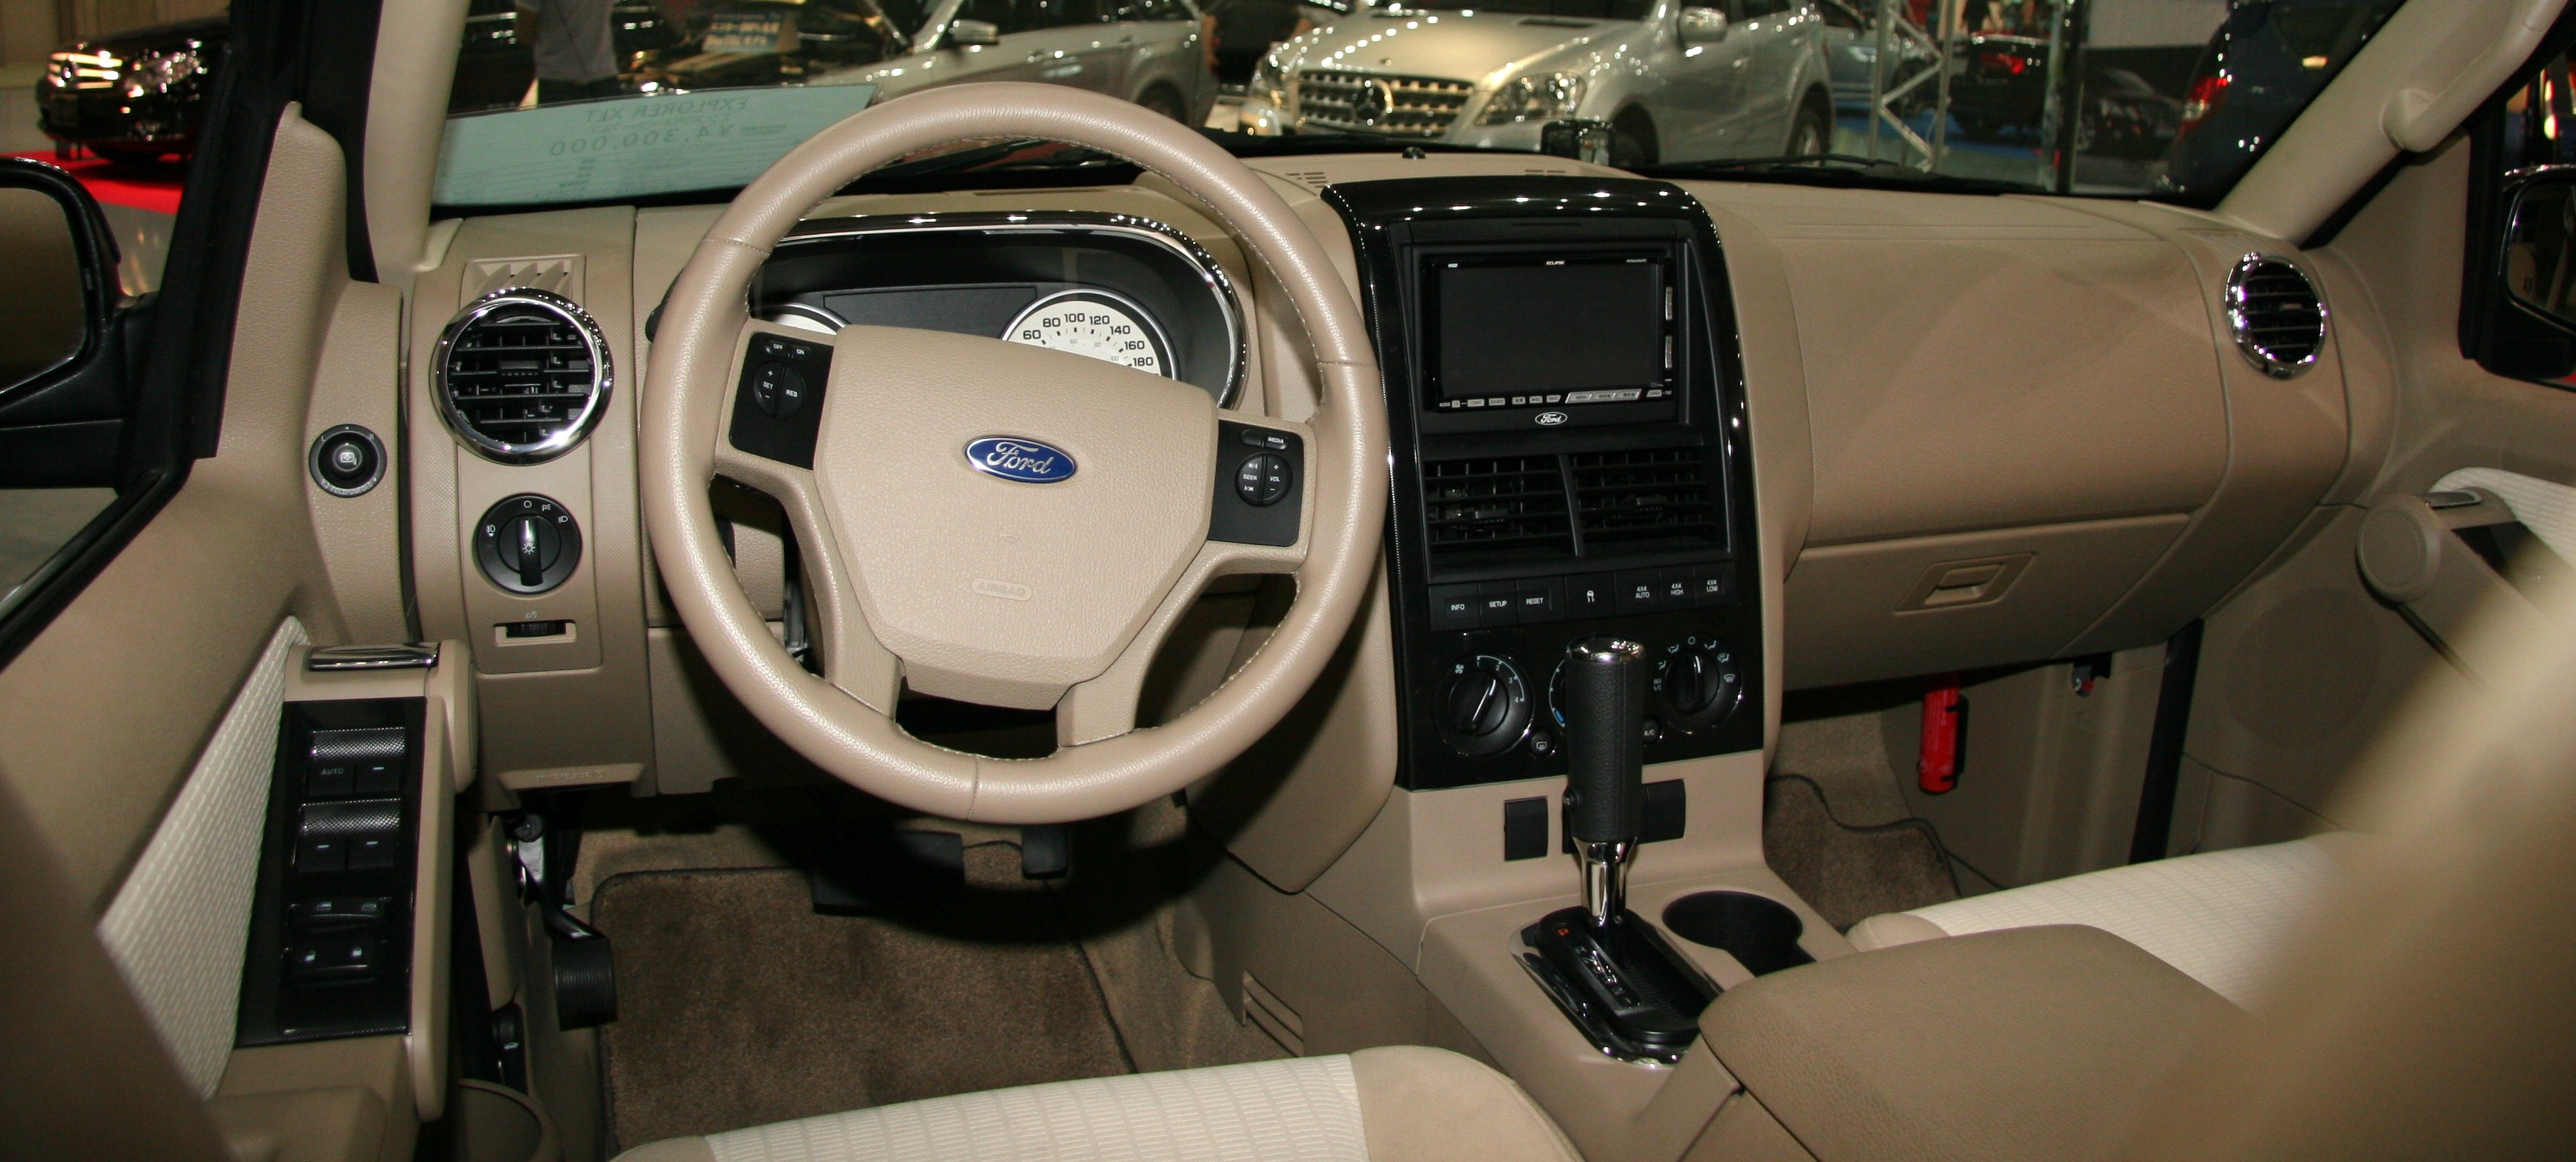 File:Ford Explorer XLT Interior